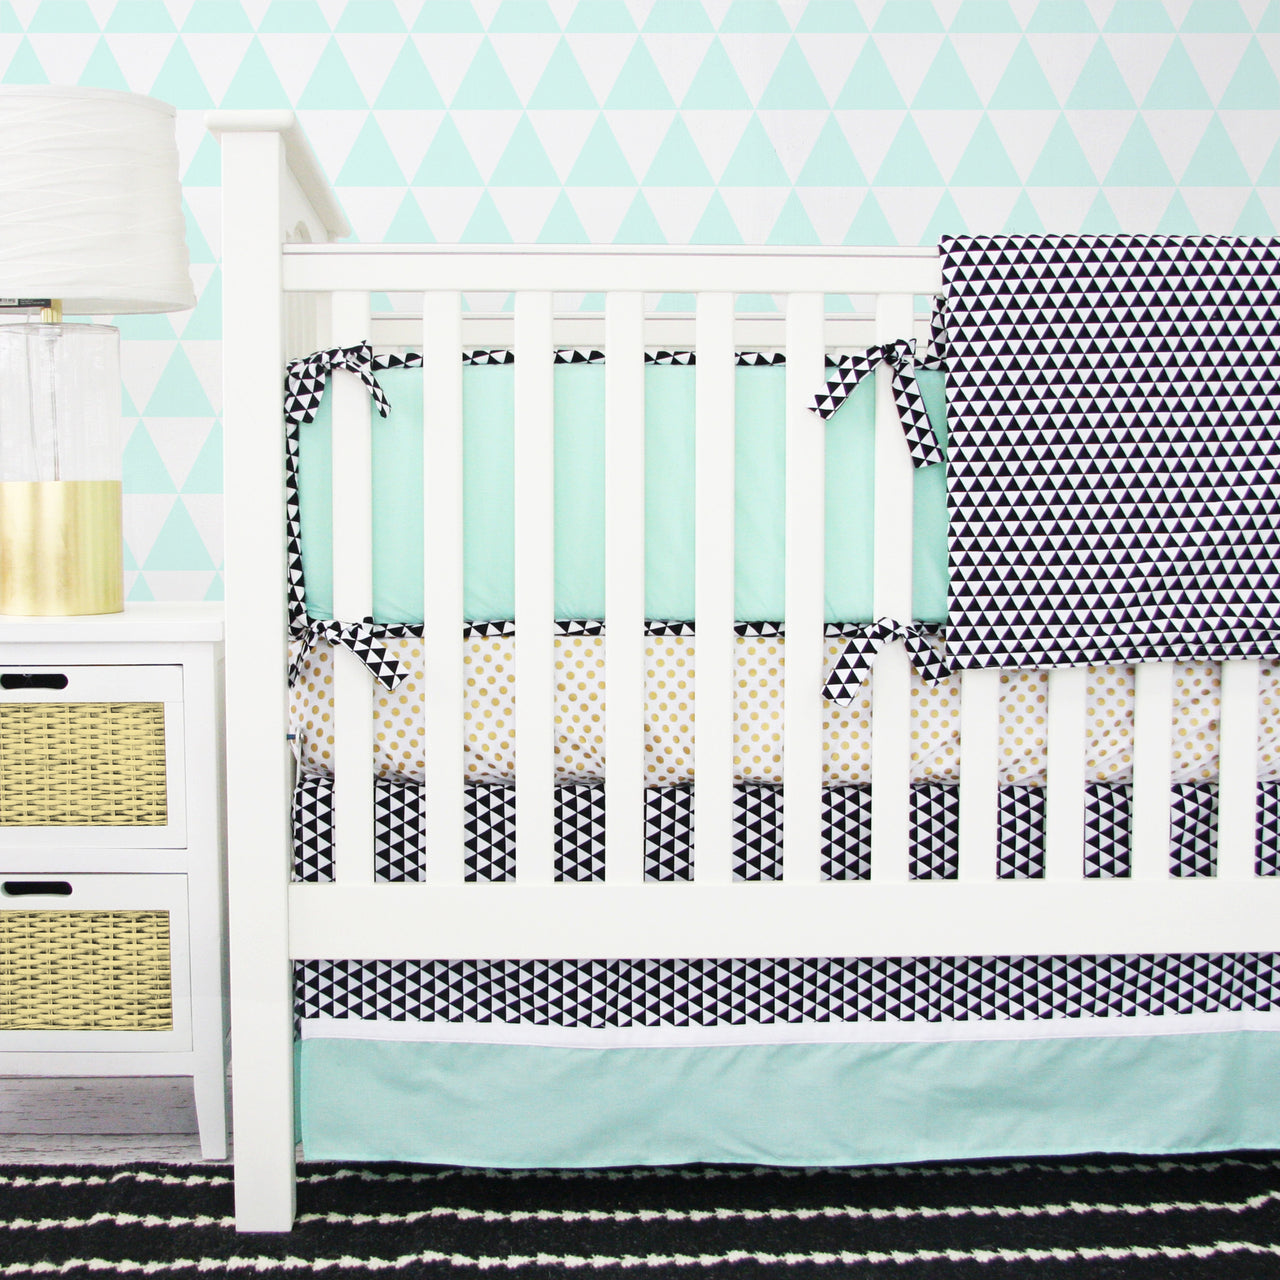 5 spring trends in baby bedding fabric